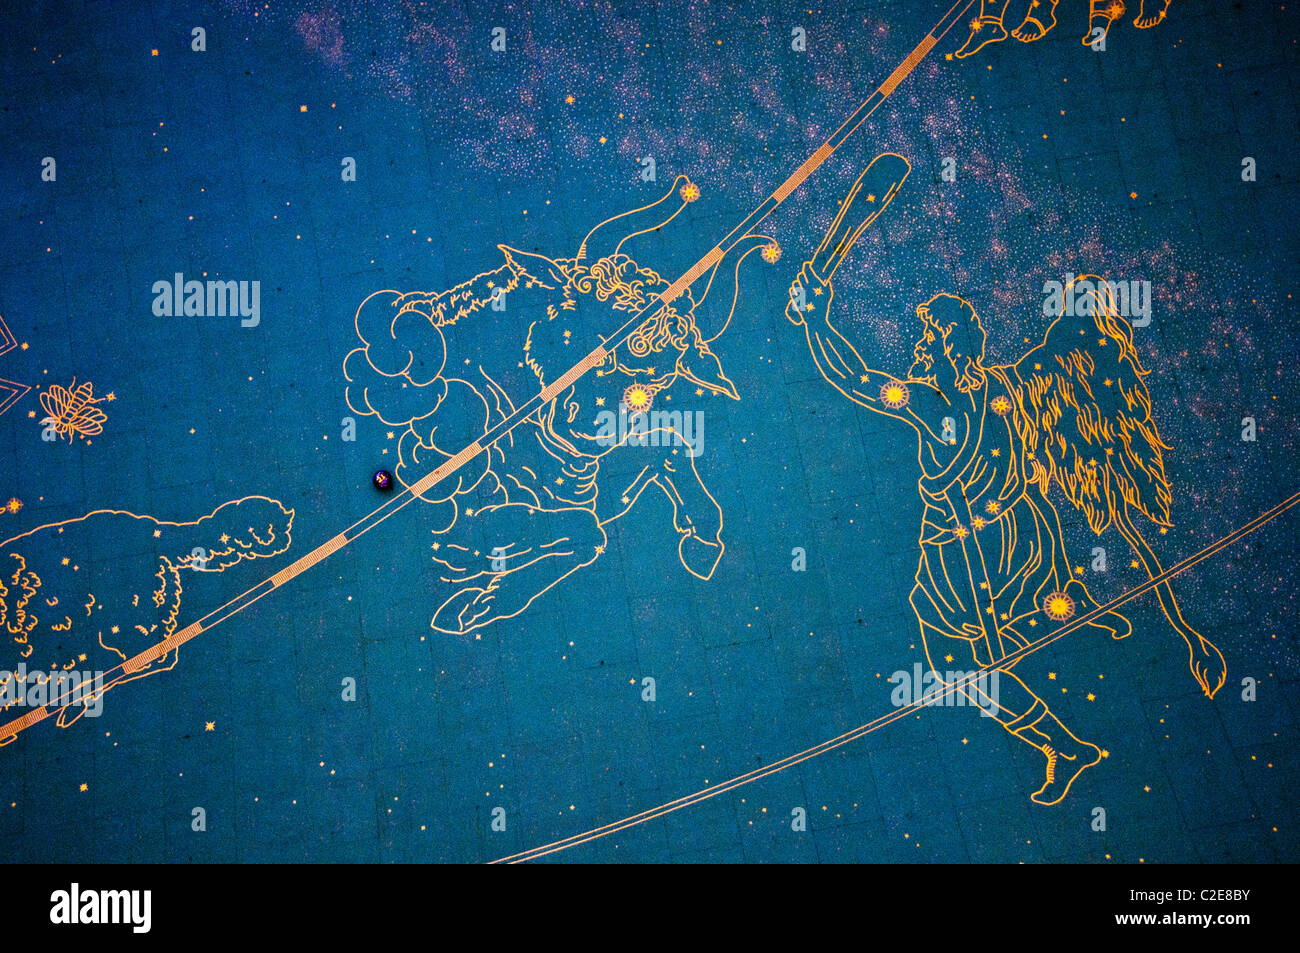 Orion And Taurus Star Constellations On The Ceiling Of